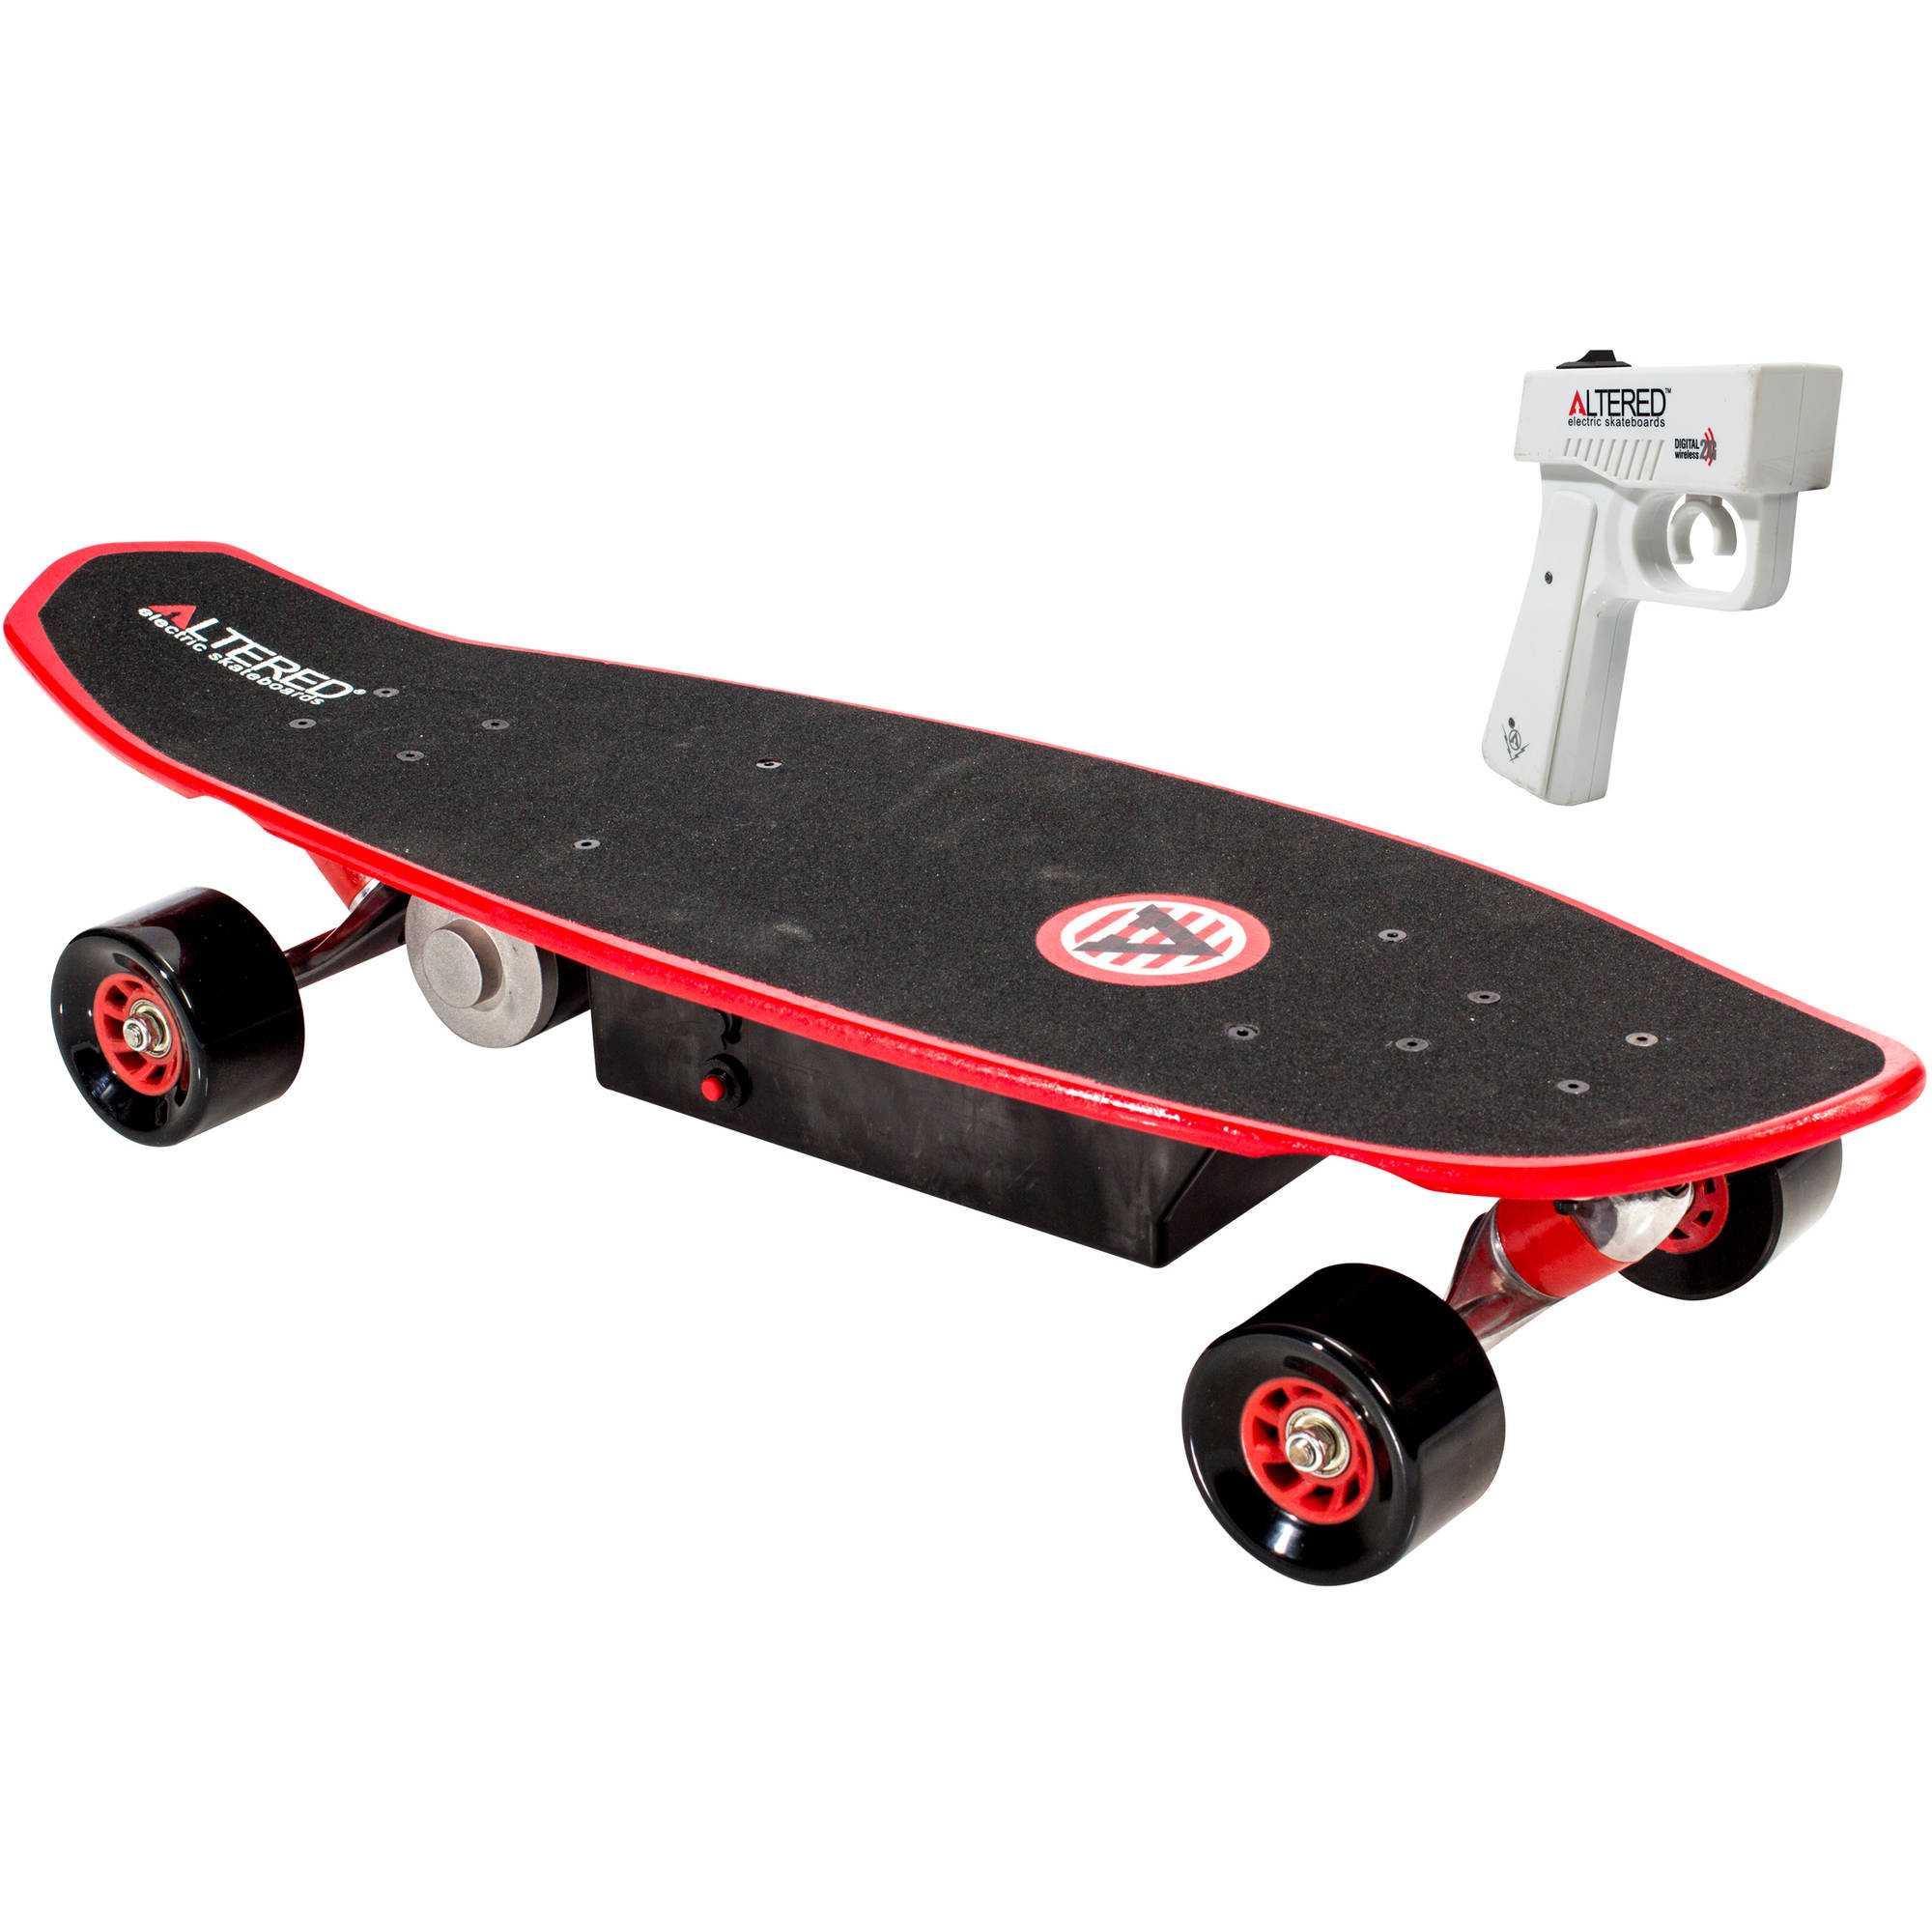 Altered Fantom 1.0 Electric Skateboard with Wireless Controller